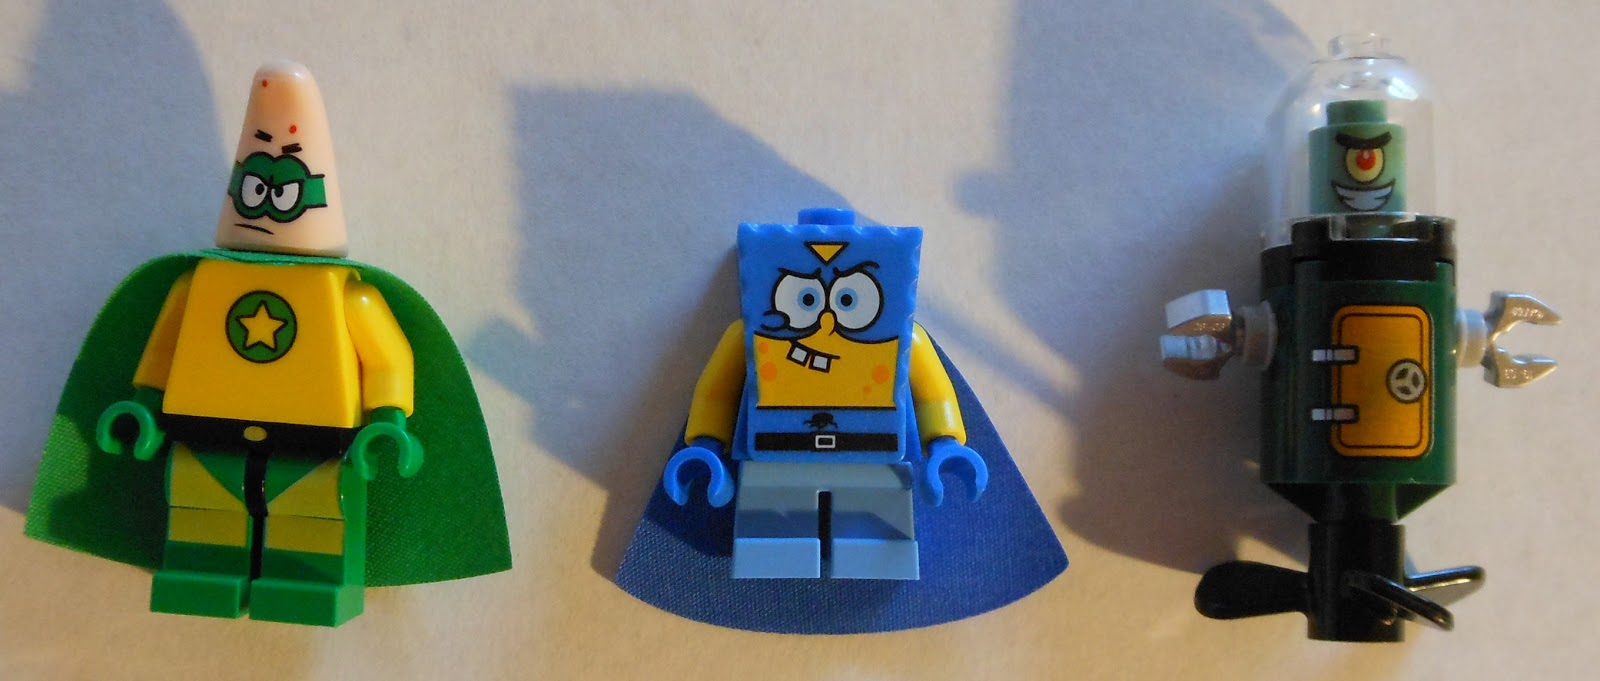 toni builds with lego spongebob heroic heroes of the deep review